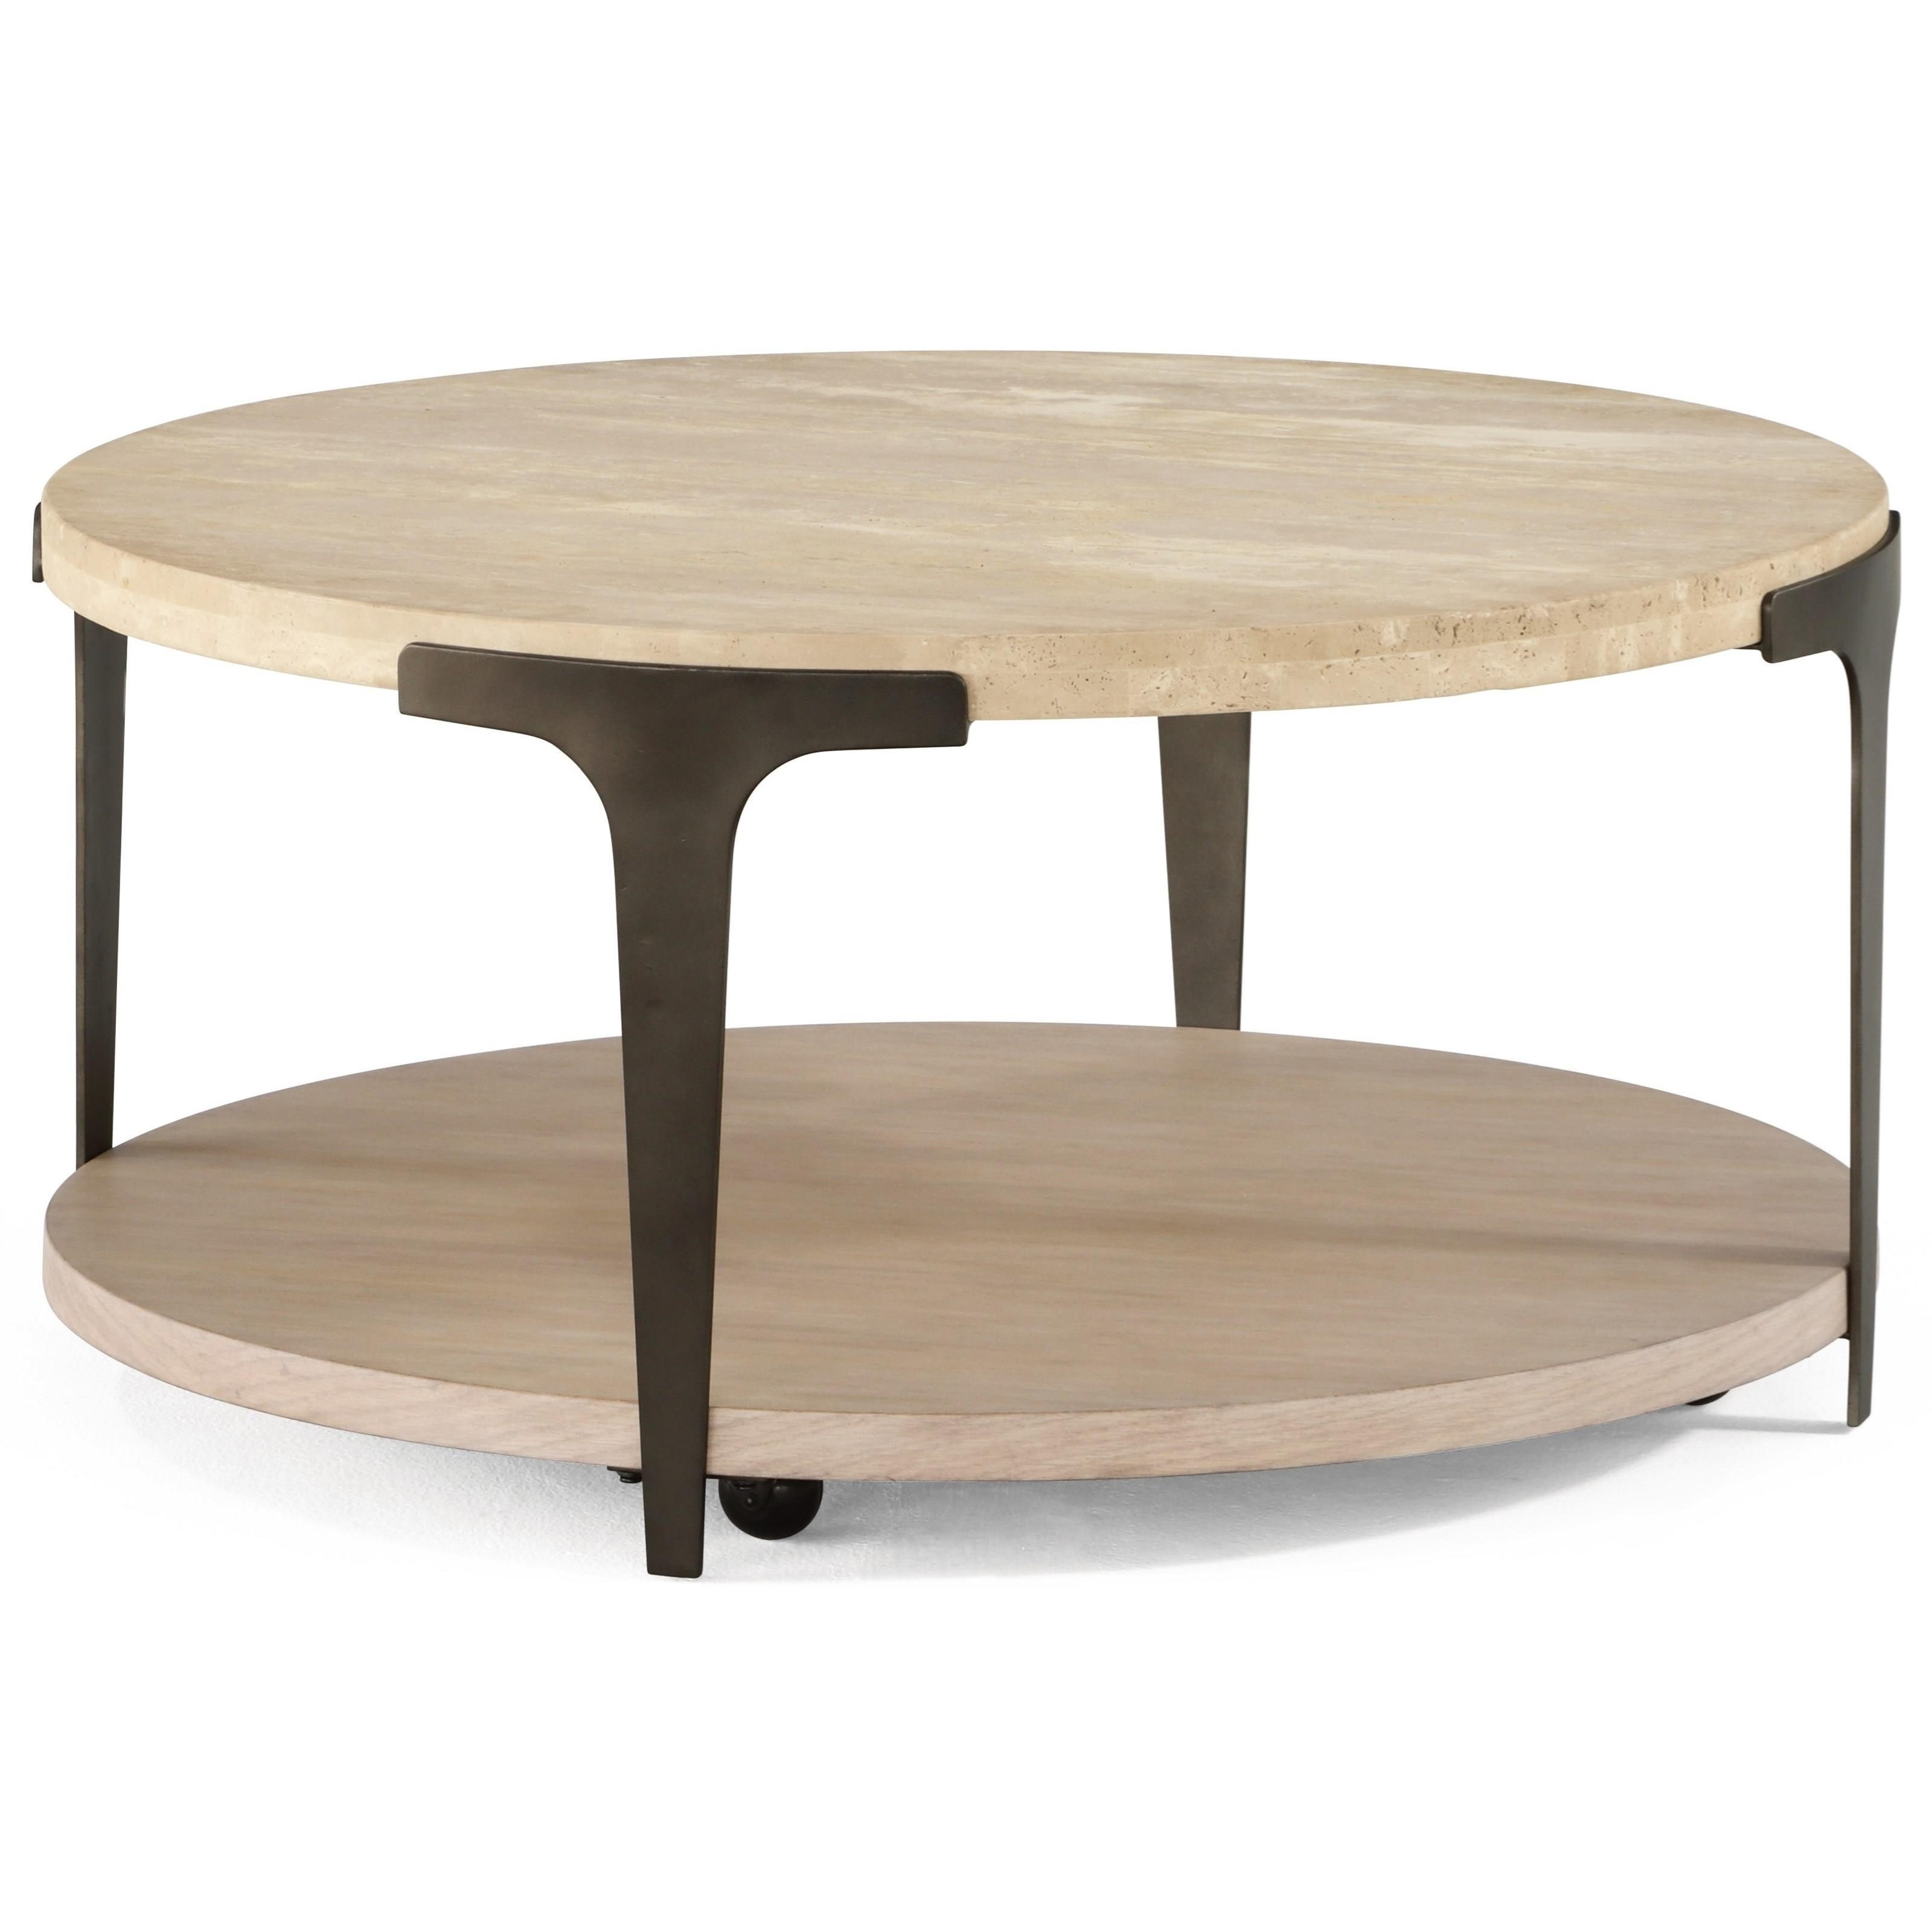 Flexsteel Omni Contempory Cocktail Table With Round Stone Top And Casters Crowley Furniture Mattress Cocktail Coffee Tables